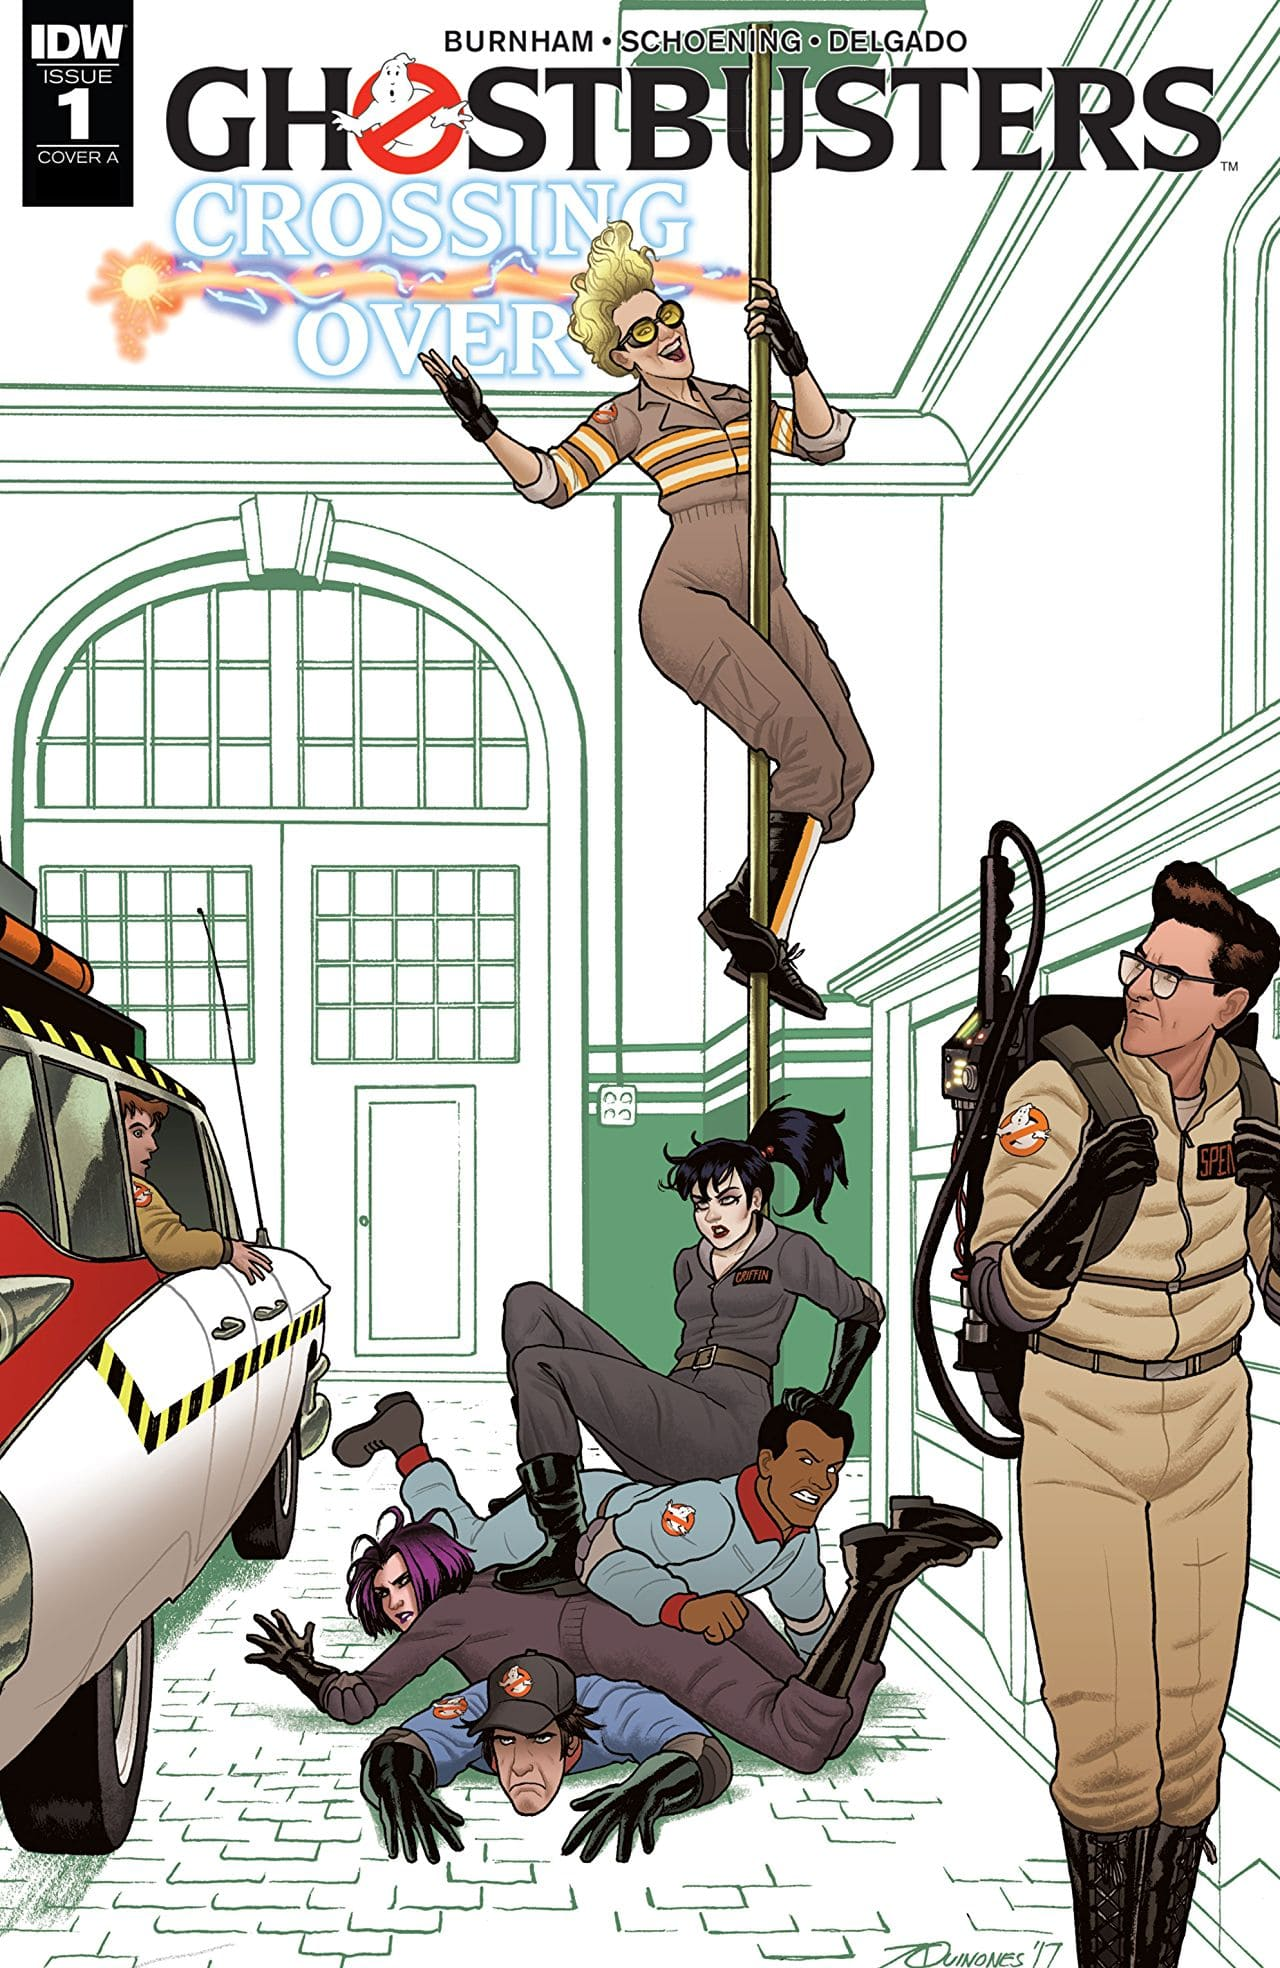 Ghostbusters: Crossing Over #1 Review